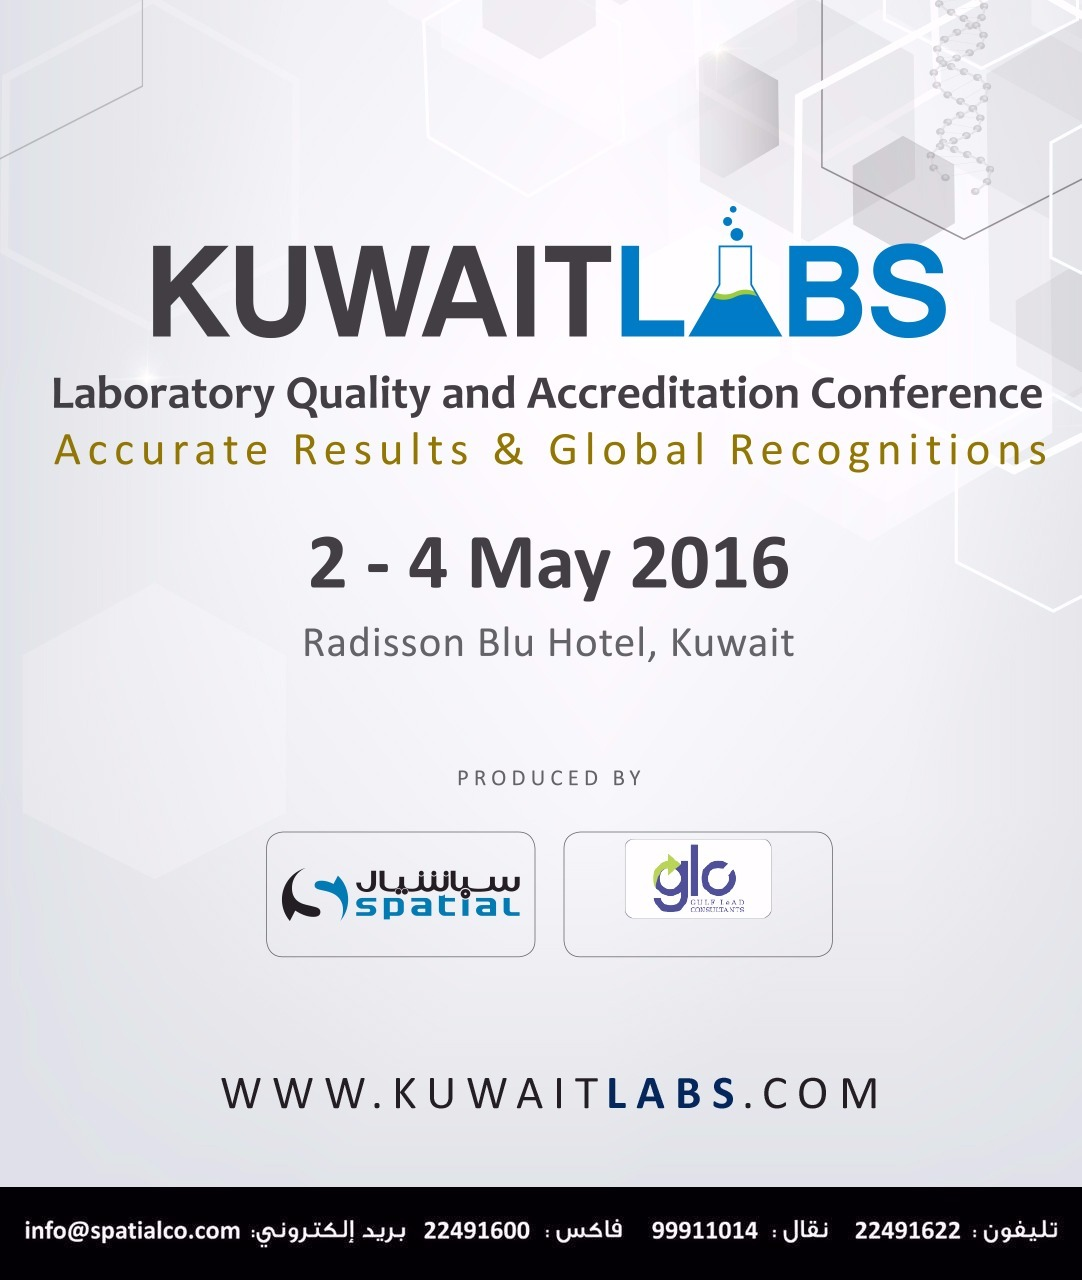 Kuwait Labs Conference 2016